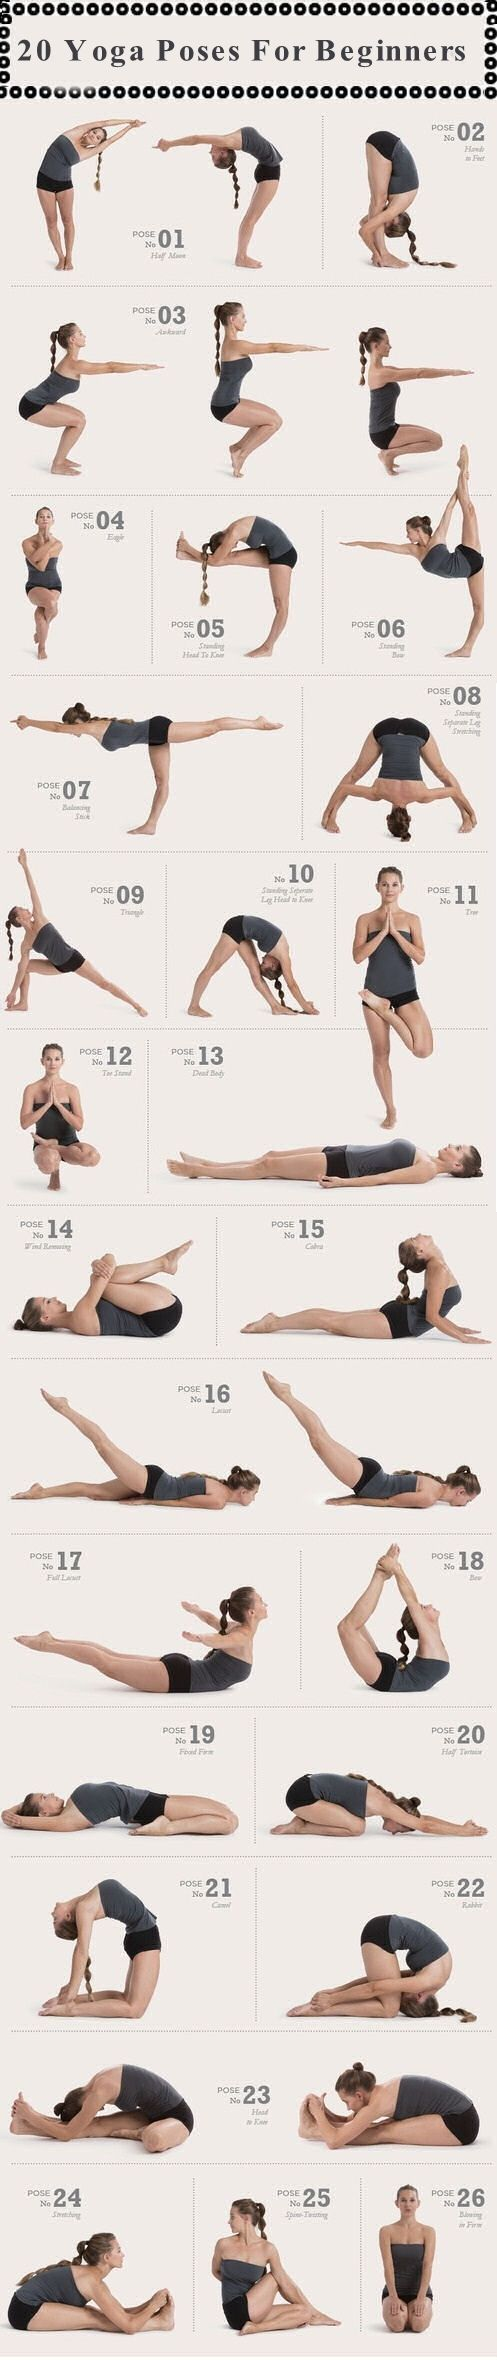 Fitness Illustration Description 20 Yoga Poses For Beginners Pictures, Photos, and Images for Facebook, Tumblr, Pinterest, and Twitter – Read More –